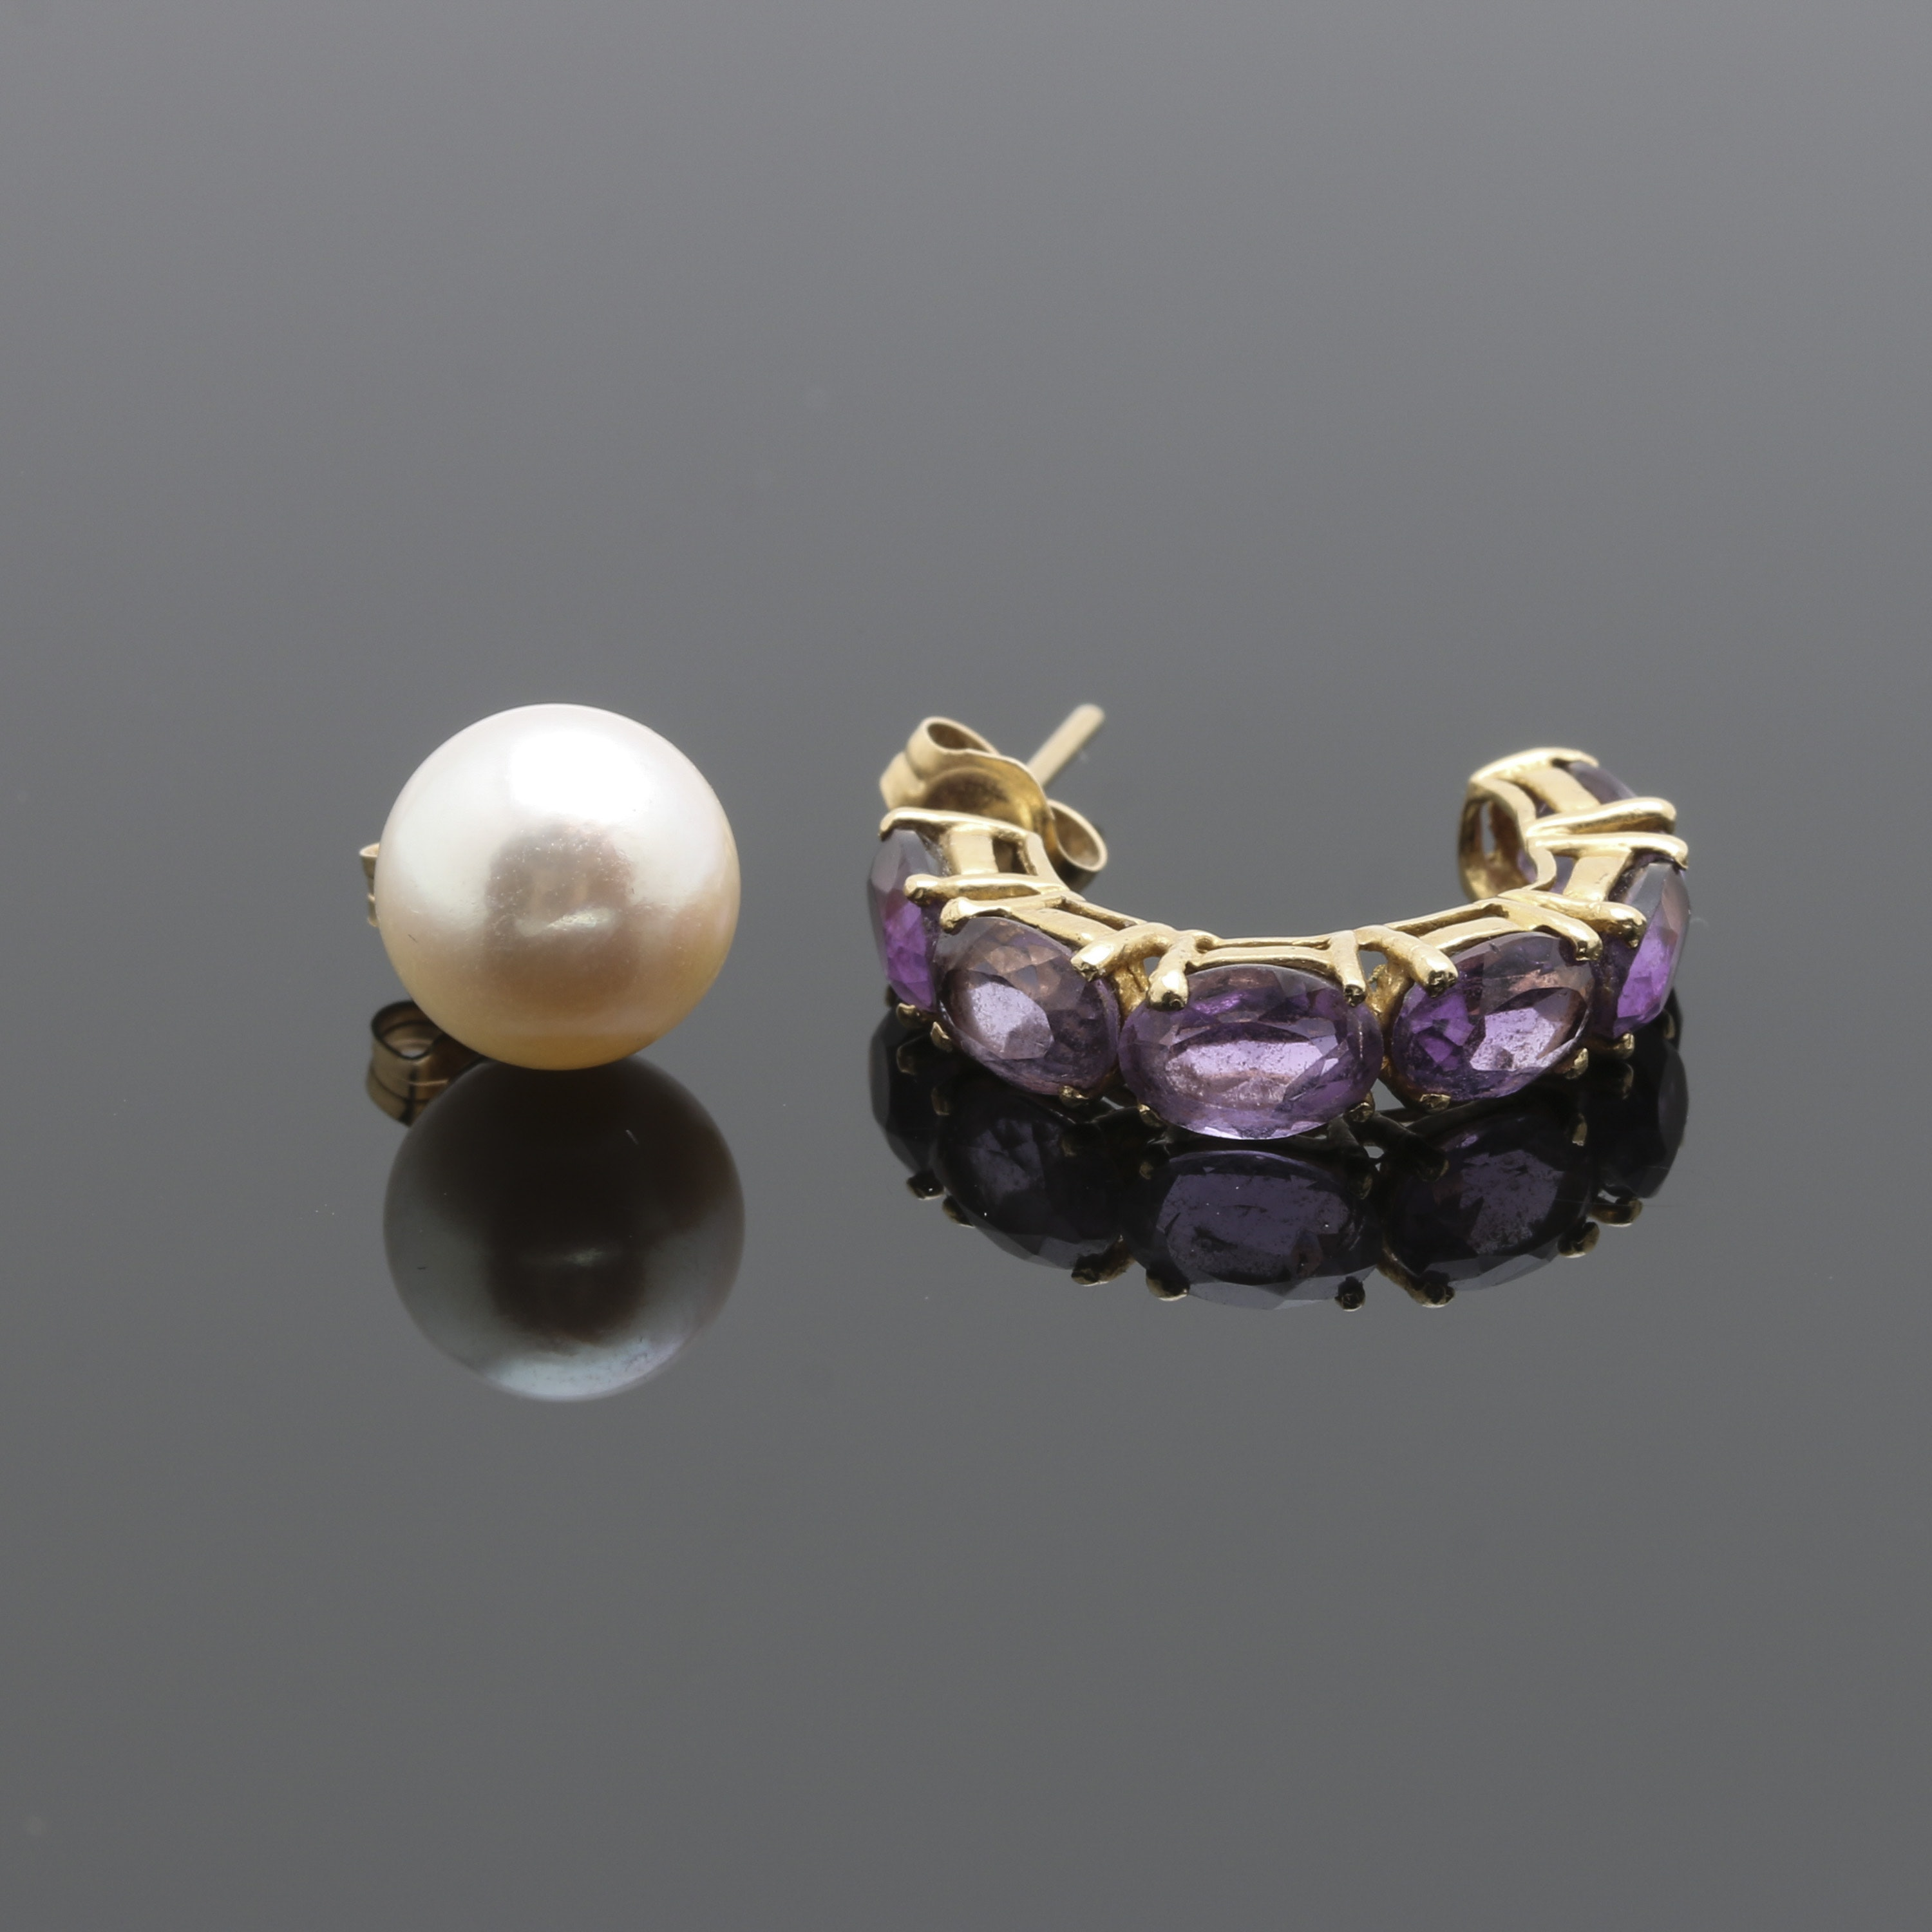 14K Yellow Gold Amethyst and Cultured Pearl Scrap Earrings